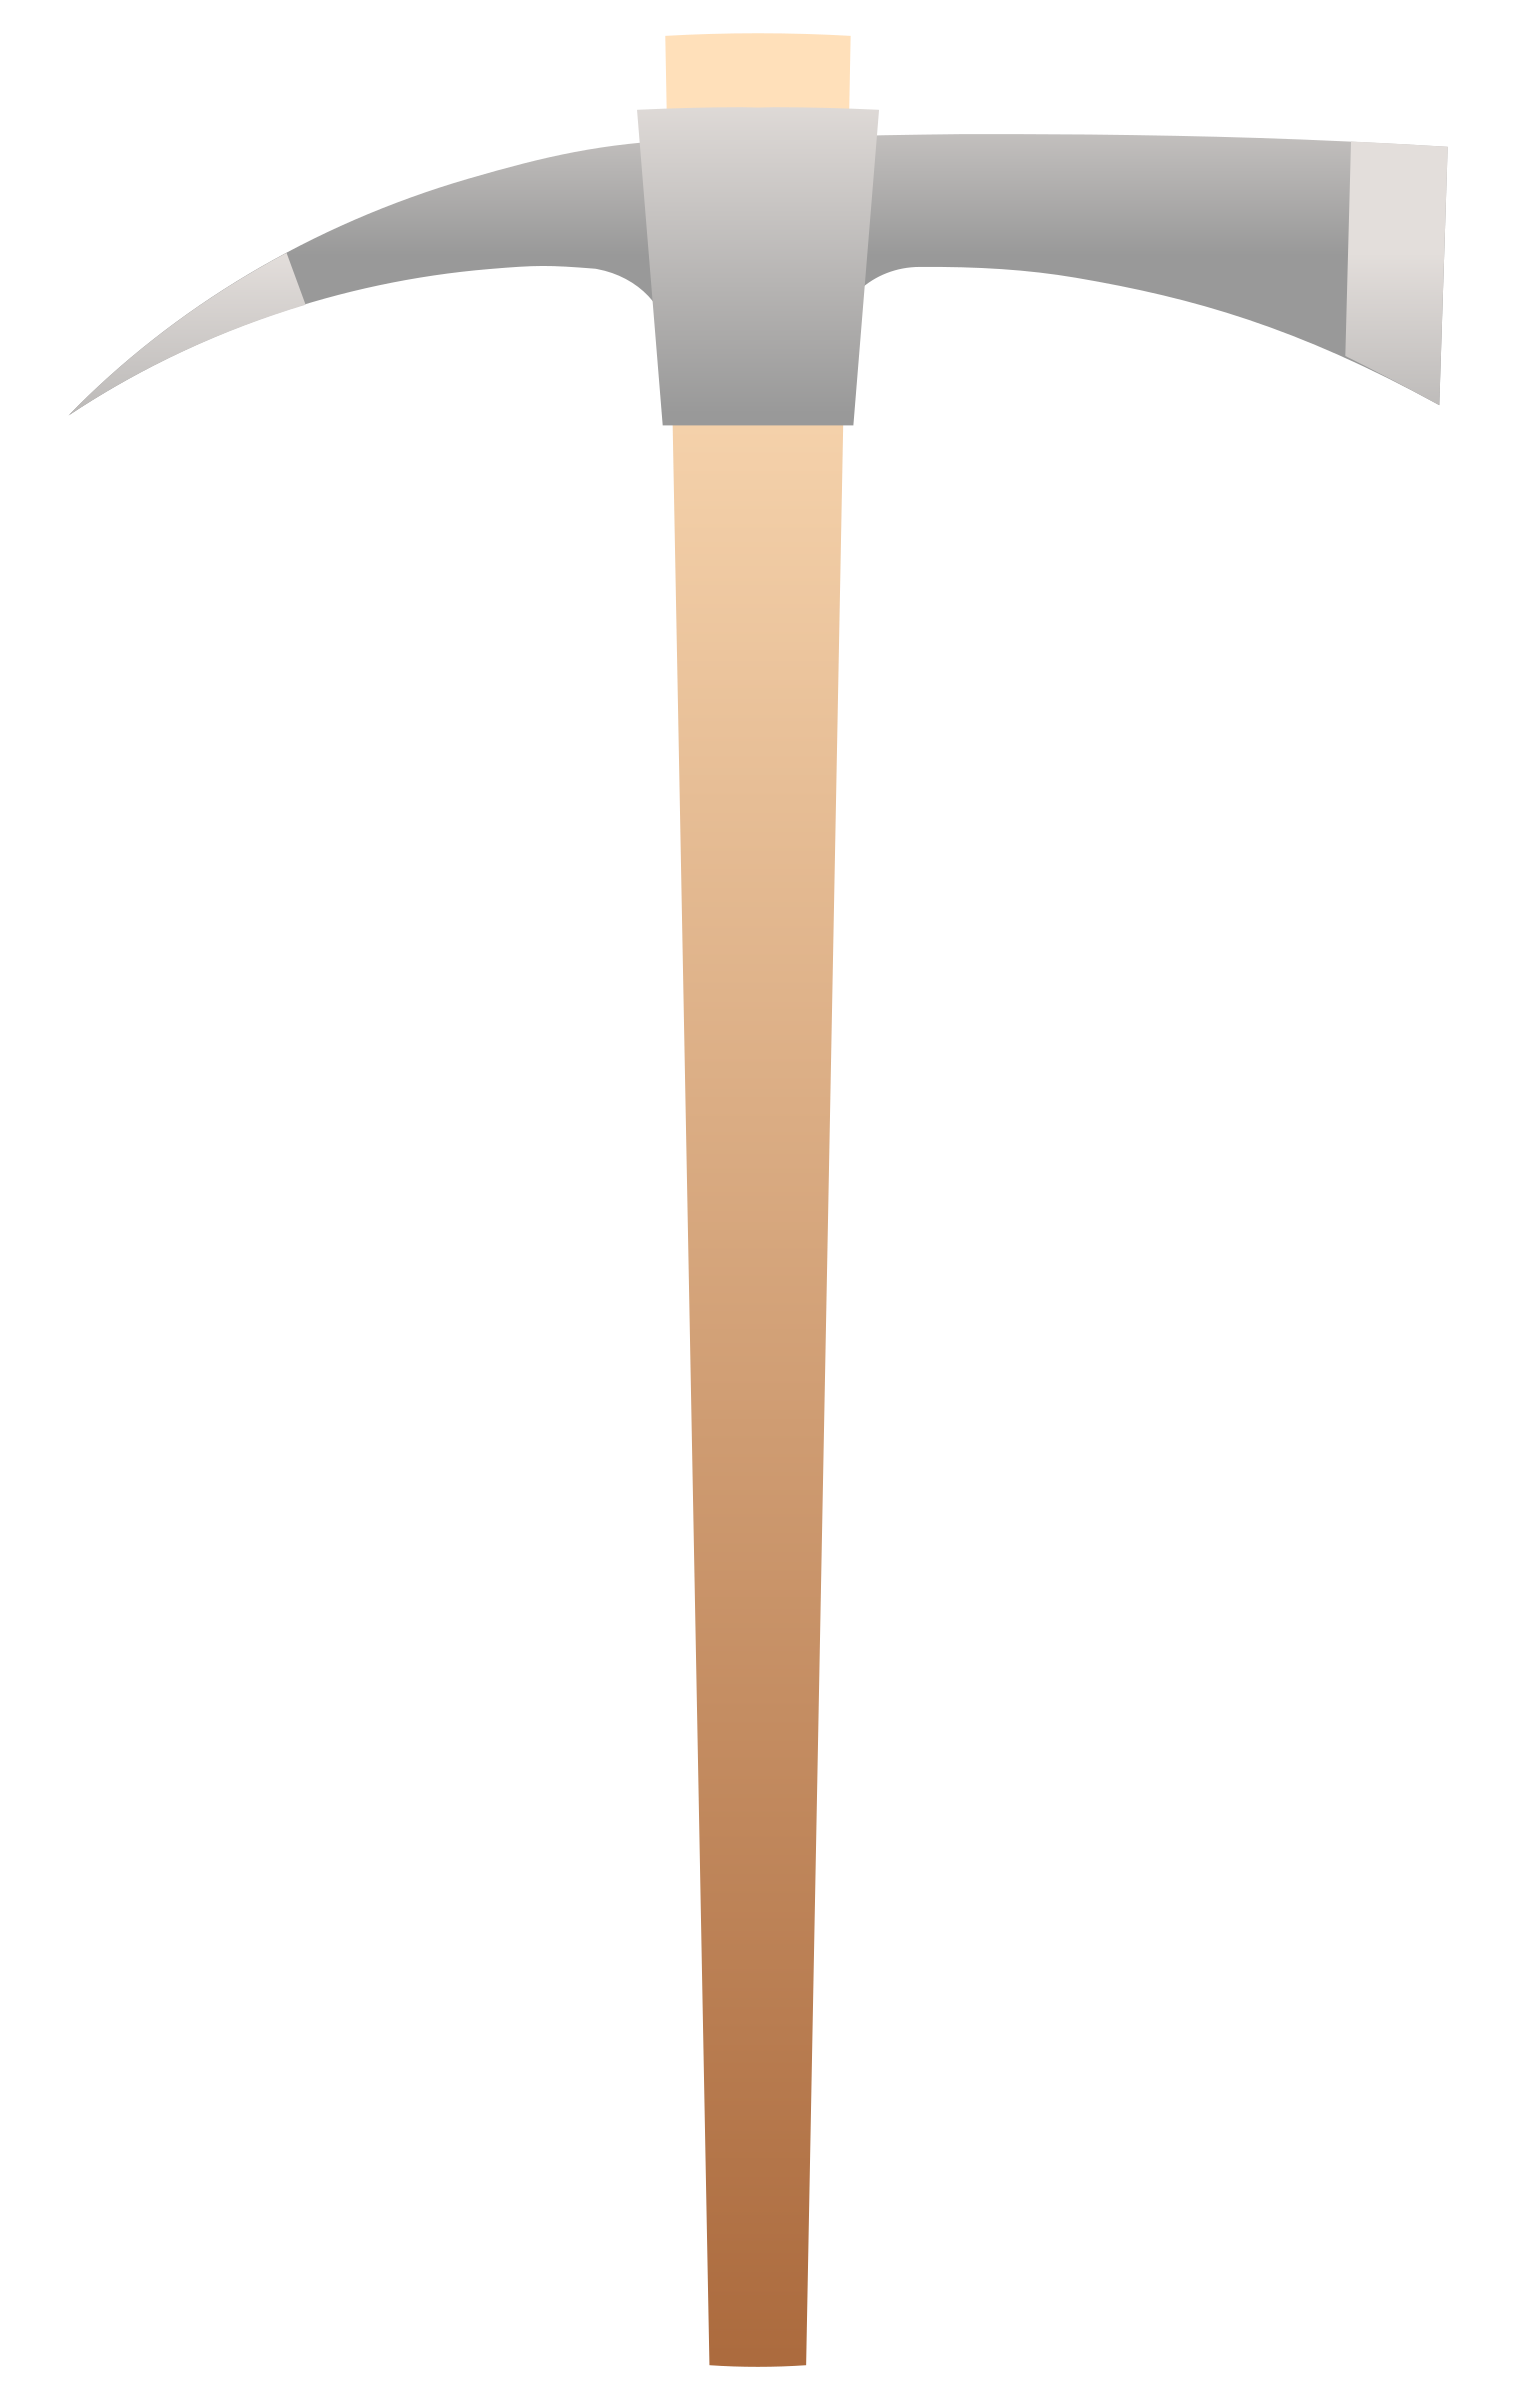 Mining clipart ice pick. Pickaxe image group axe